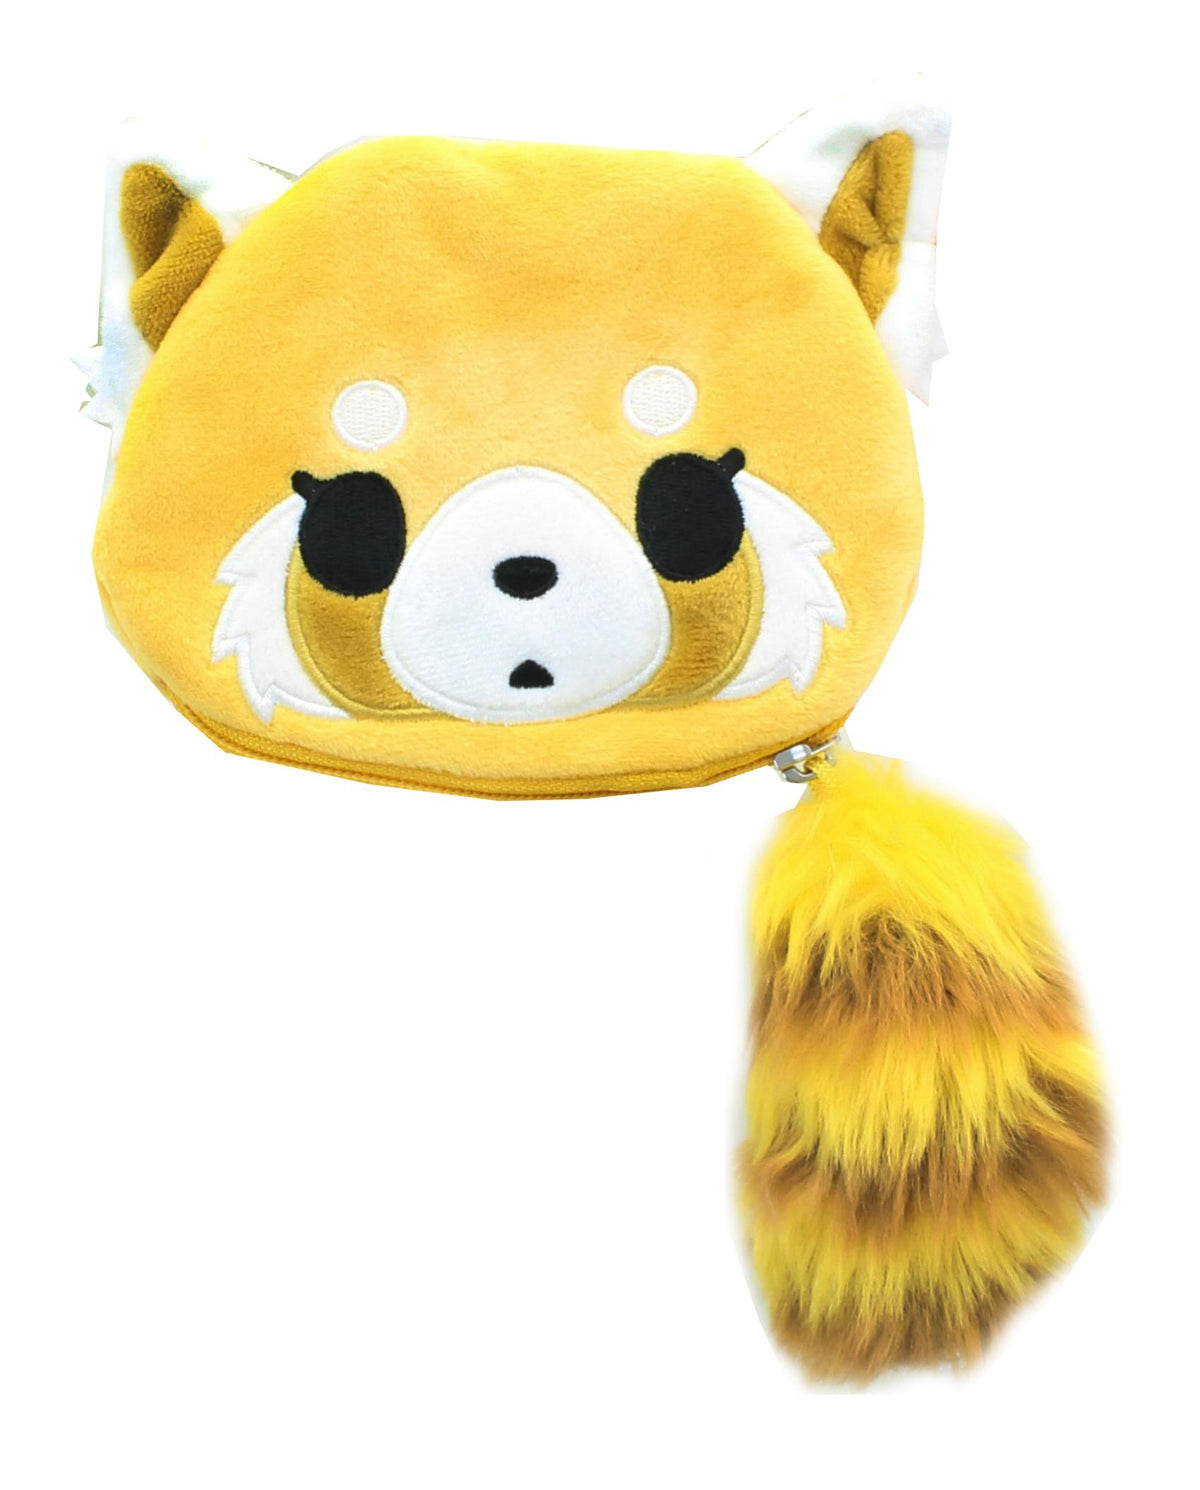 Aggretsuko Calm Face Plush Coin Purse